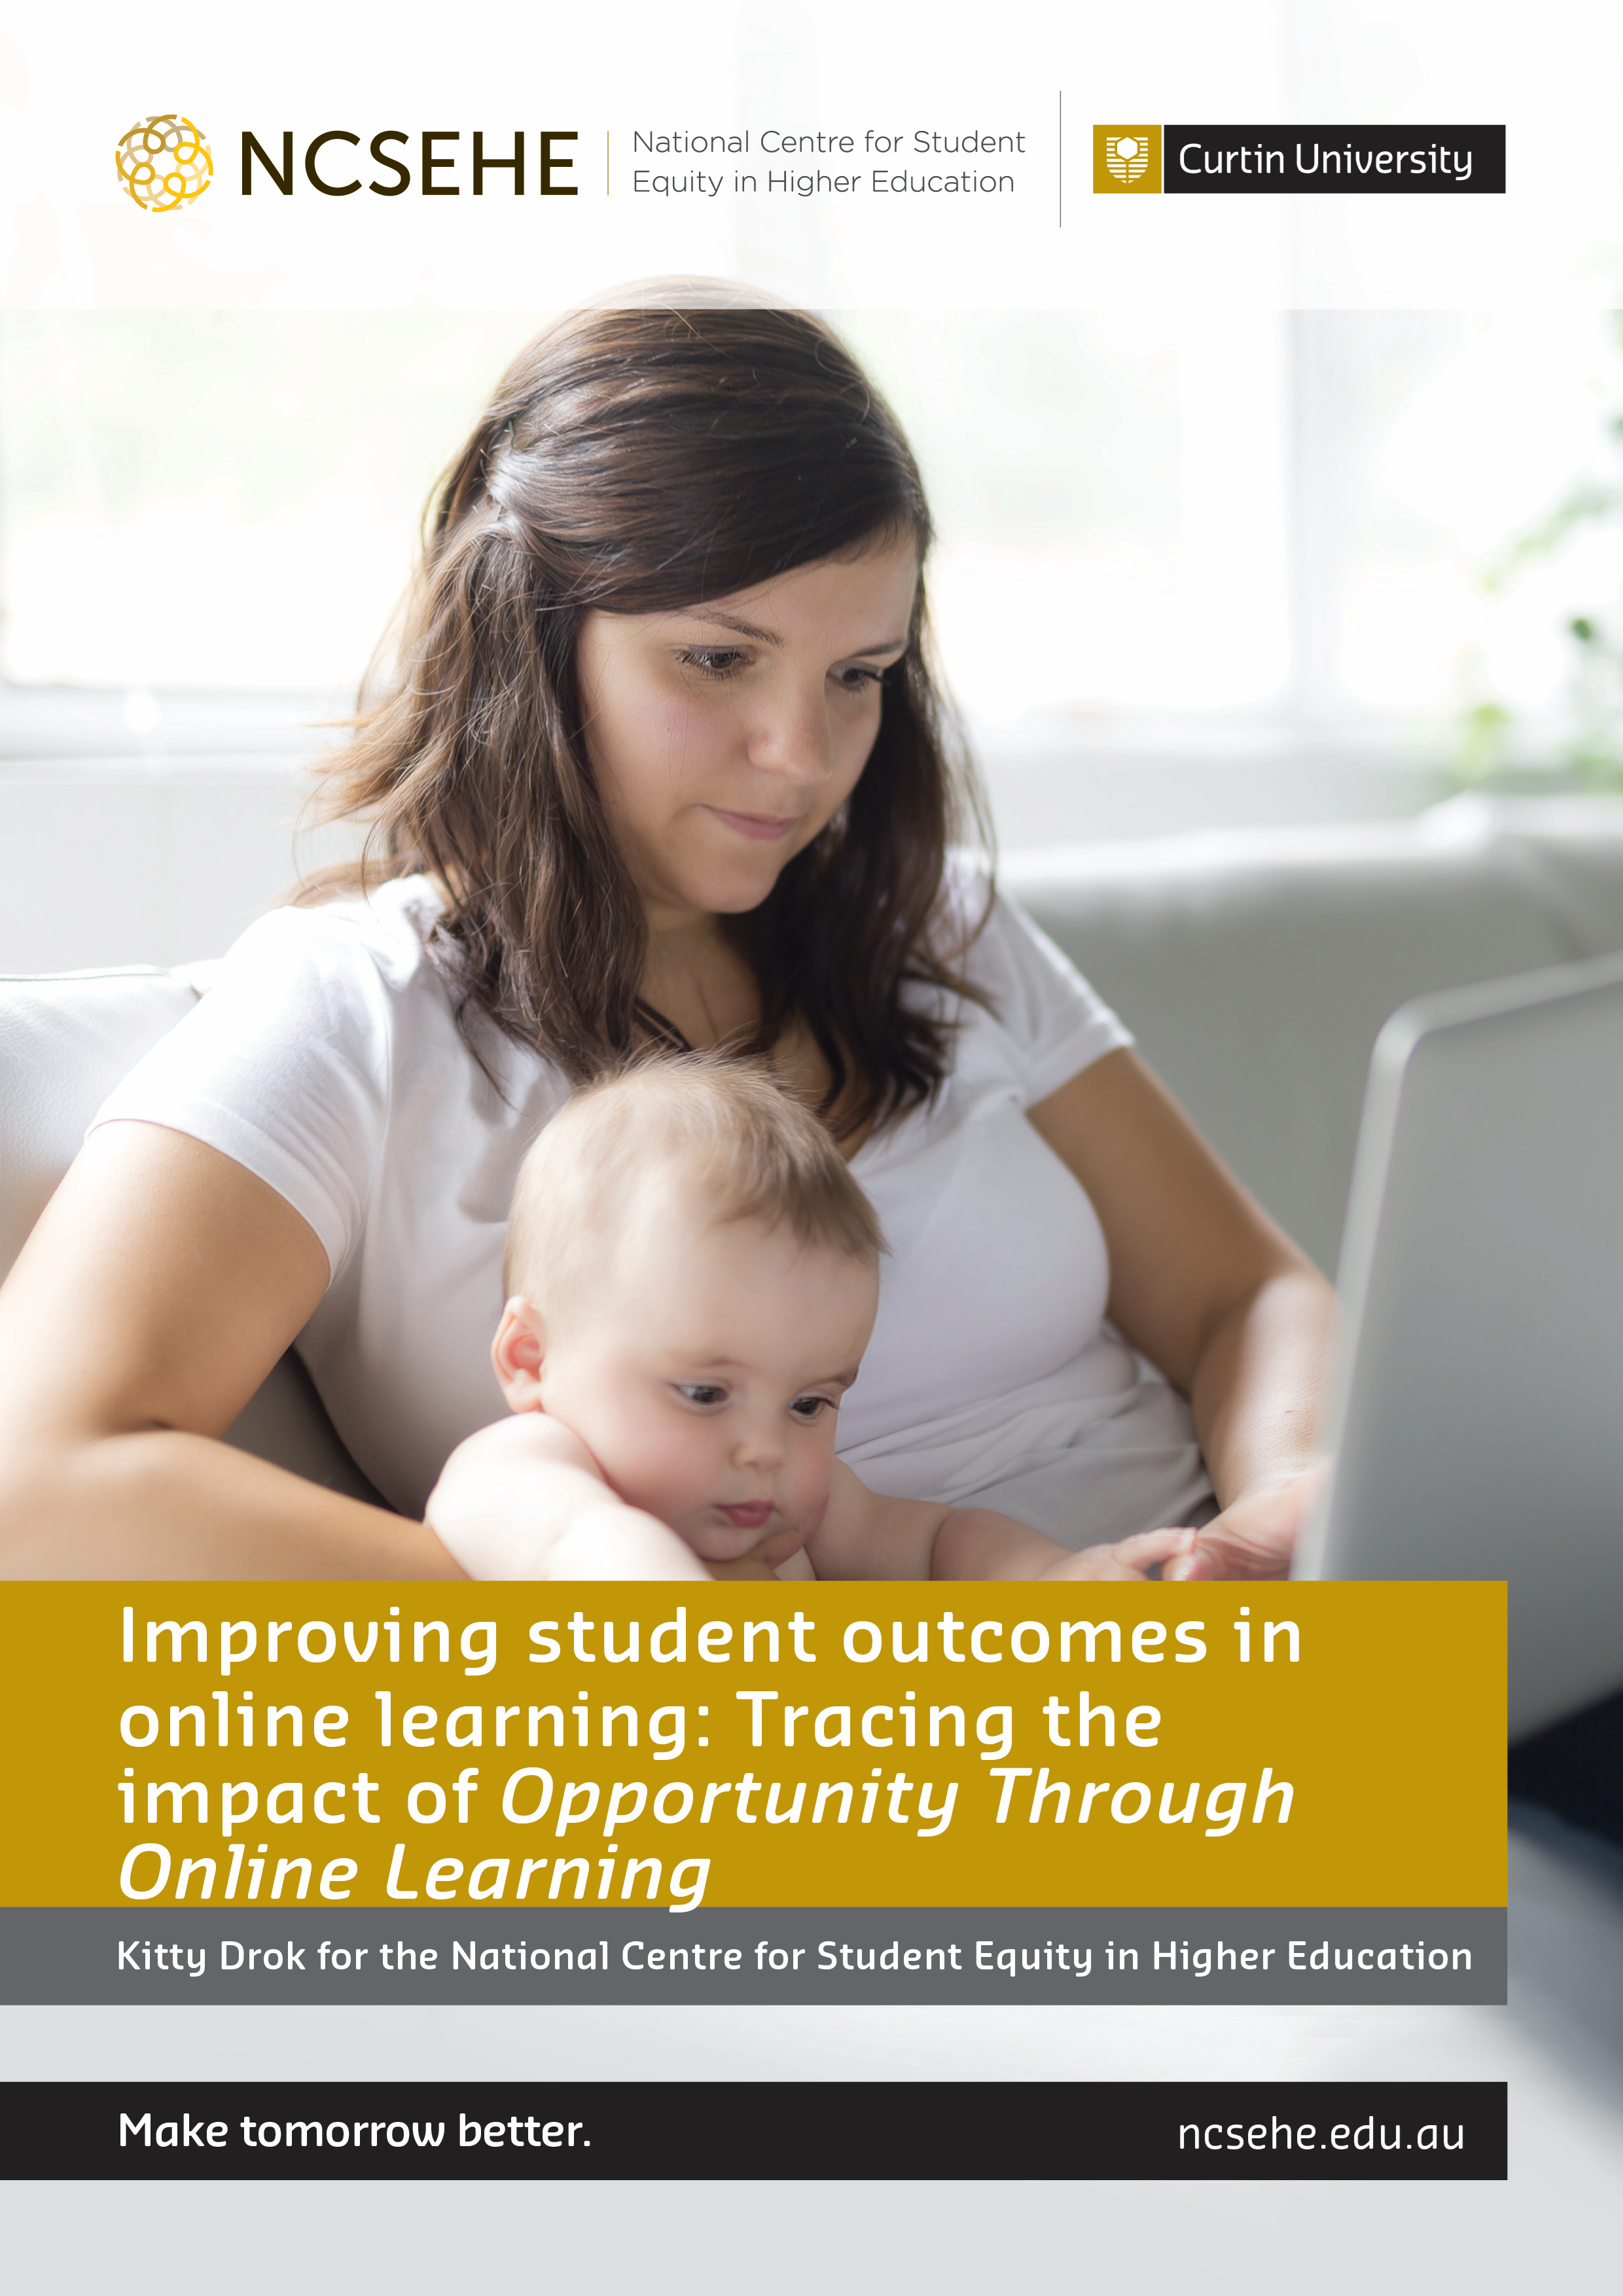 Cathy Stone impact report cover: Opportunity through online learning